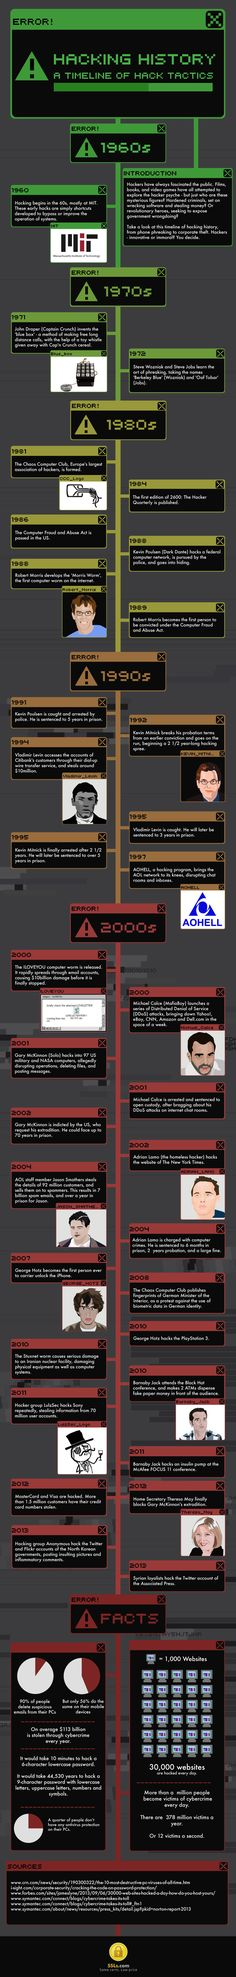 Hacking History – A Timeline Of Hack Tactics #infographic